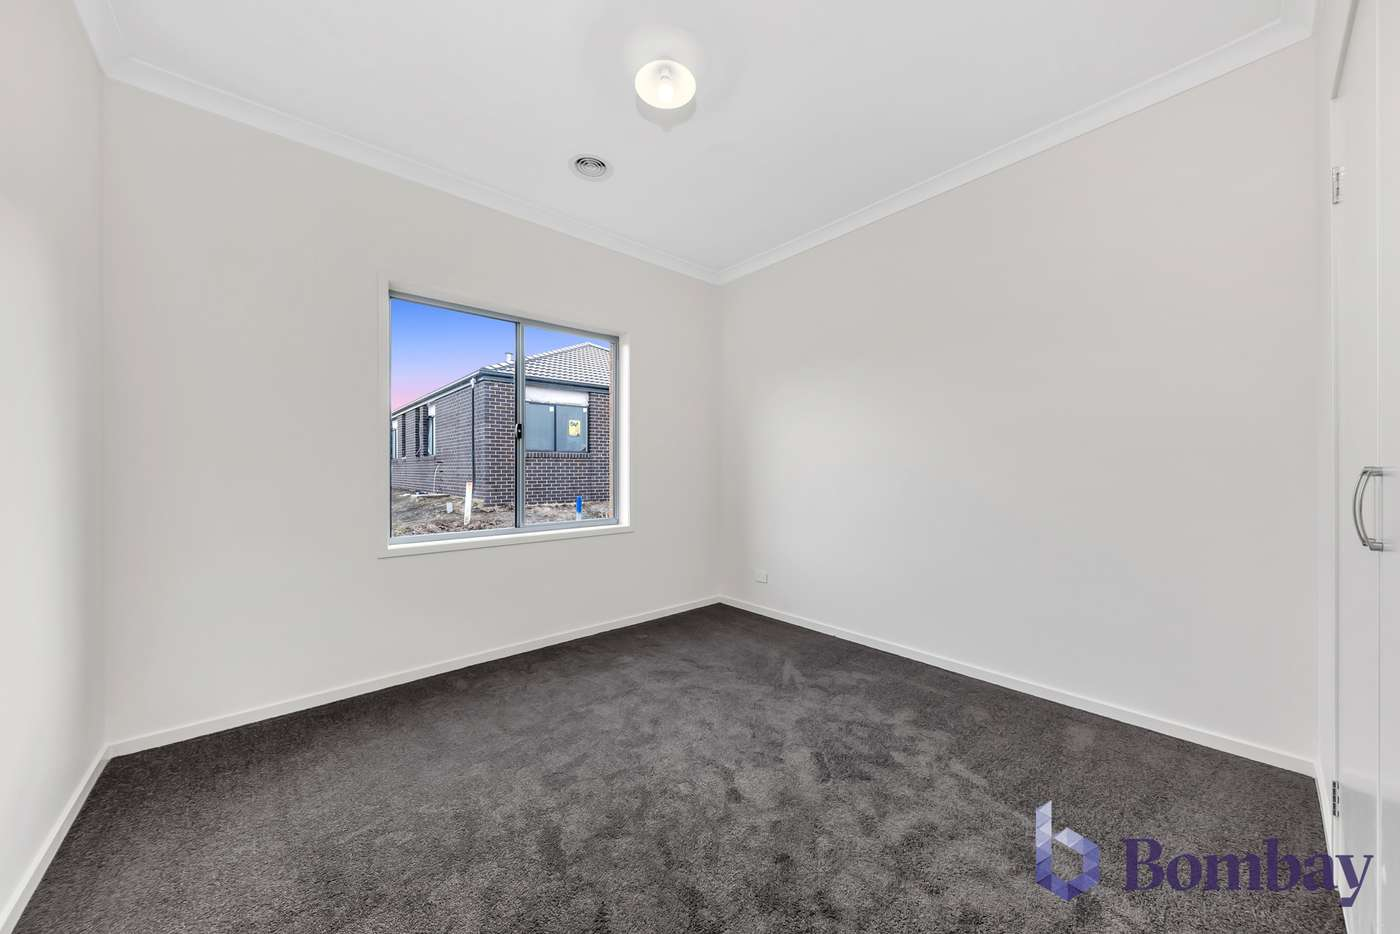 Sixth view of Homely house listing, 30 Bookham Circuit, Kalkallo VIC 3064